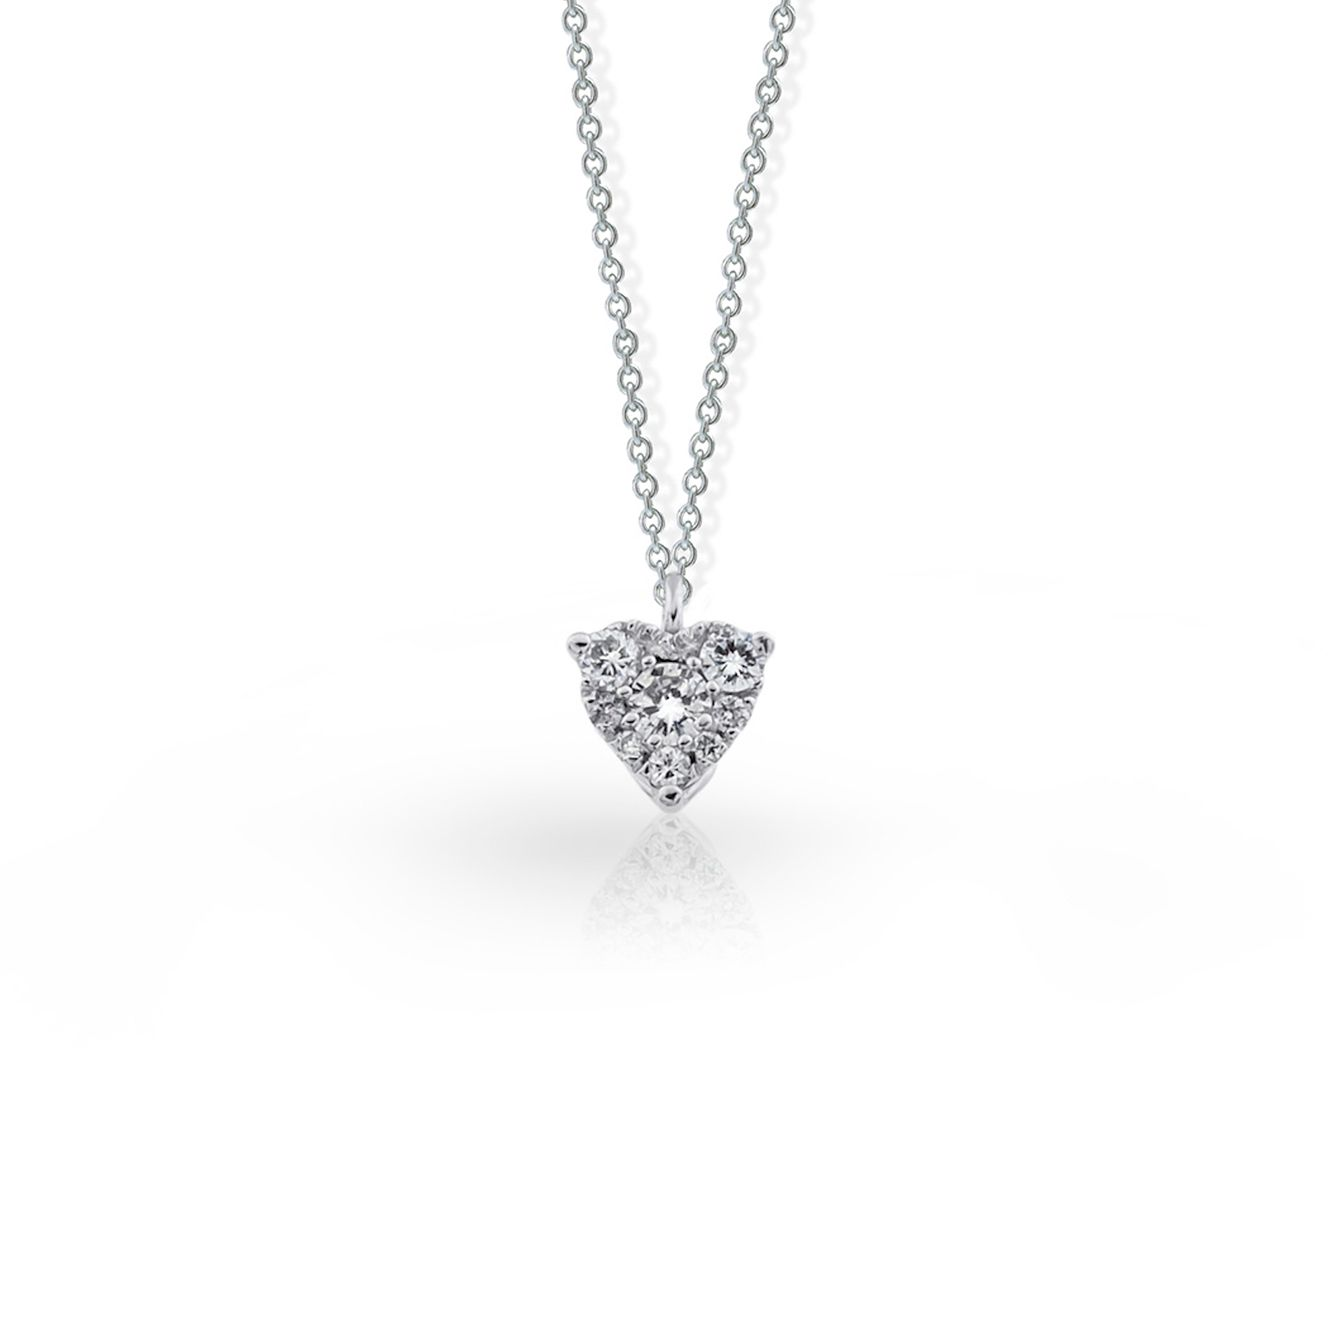 Small heart shaped diamond necklace in white gold diamond small heart shaped diamond necklace in white gold diamond diamonds jewelry fiorly mozeypictures Images